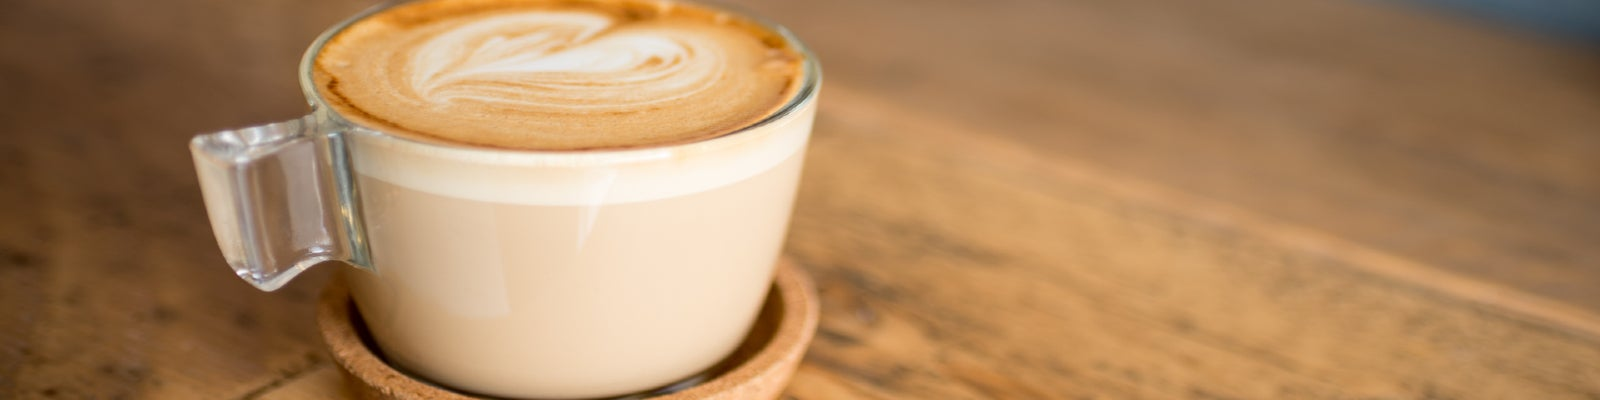 A flat white coffee in a cup